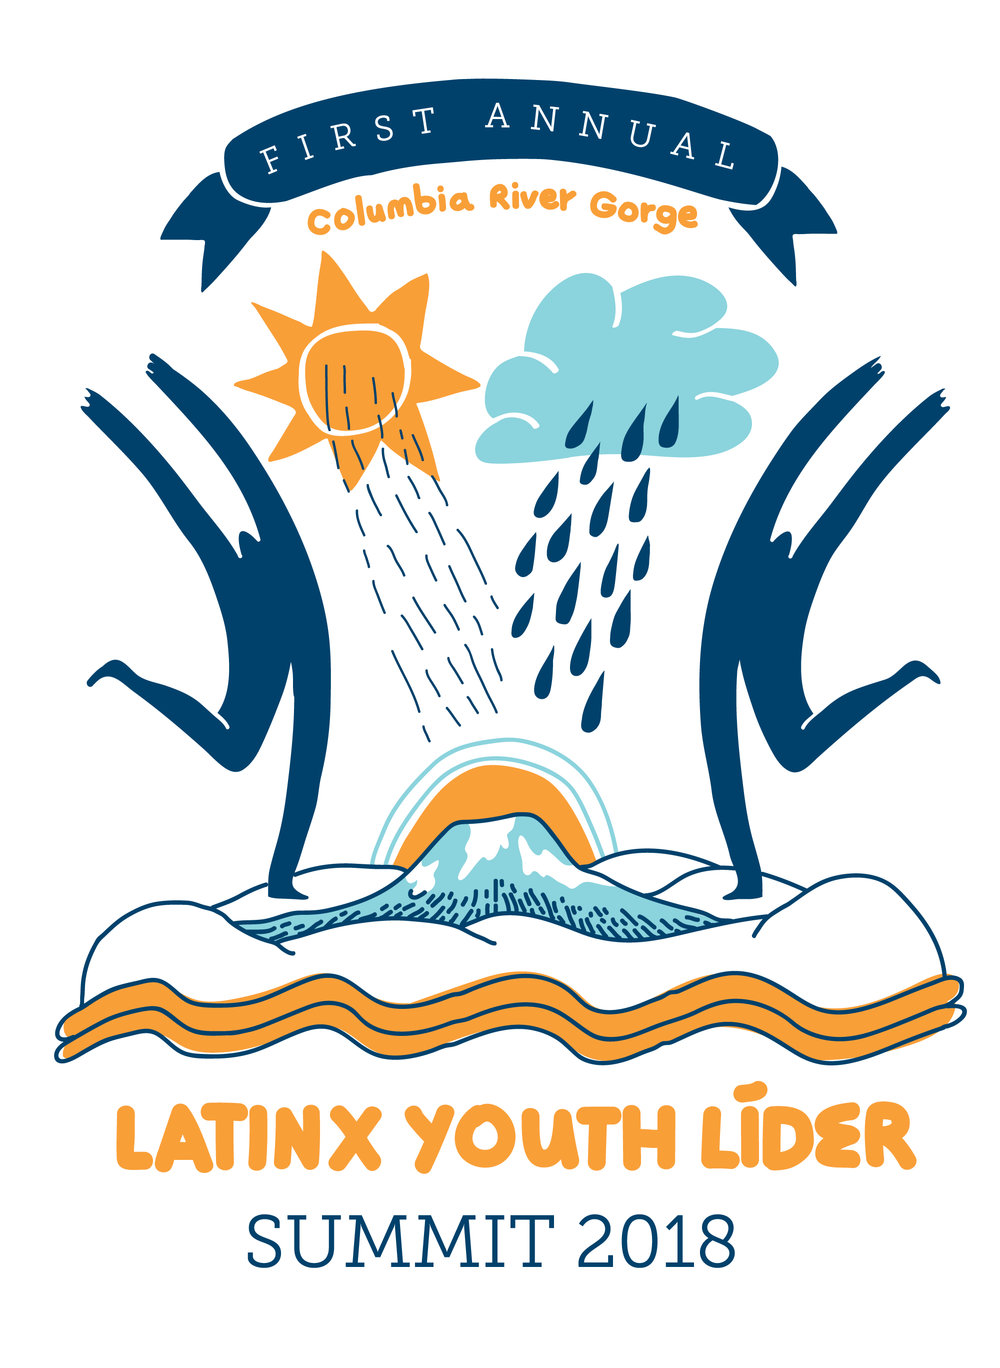 Latinx-Youth-Lider-Summit-2018.jpg